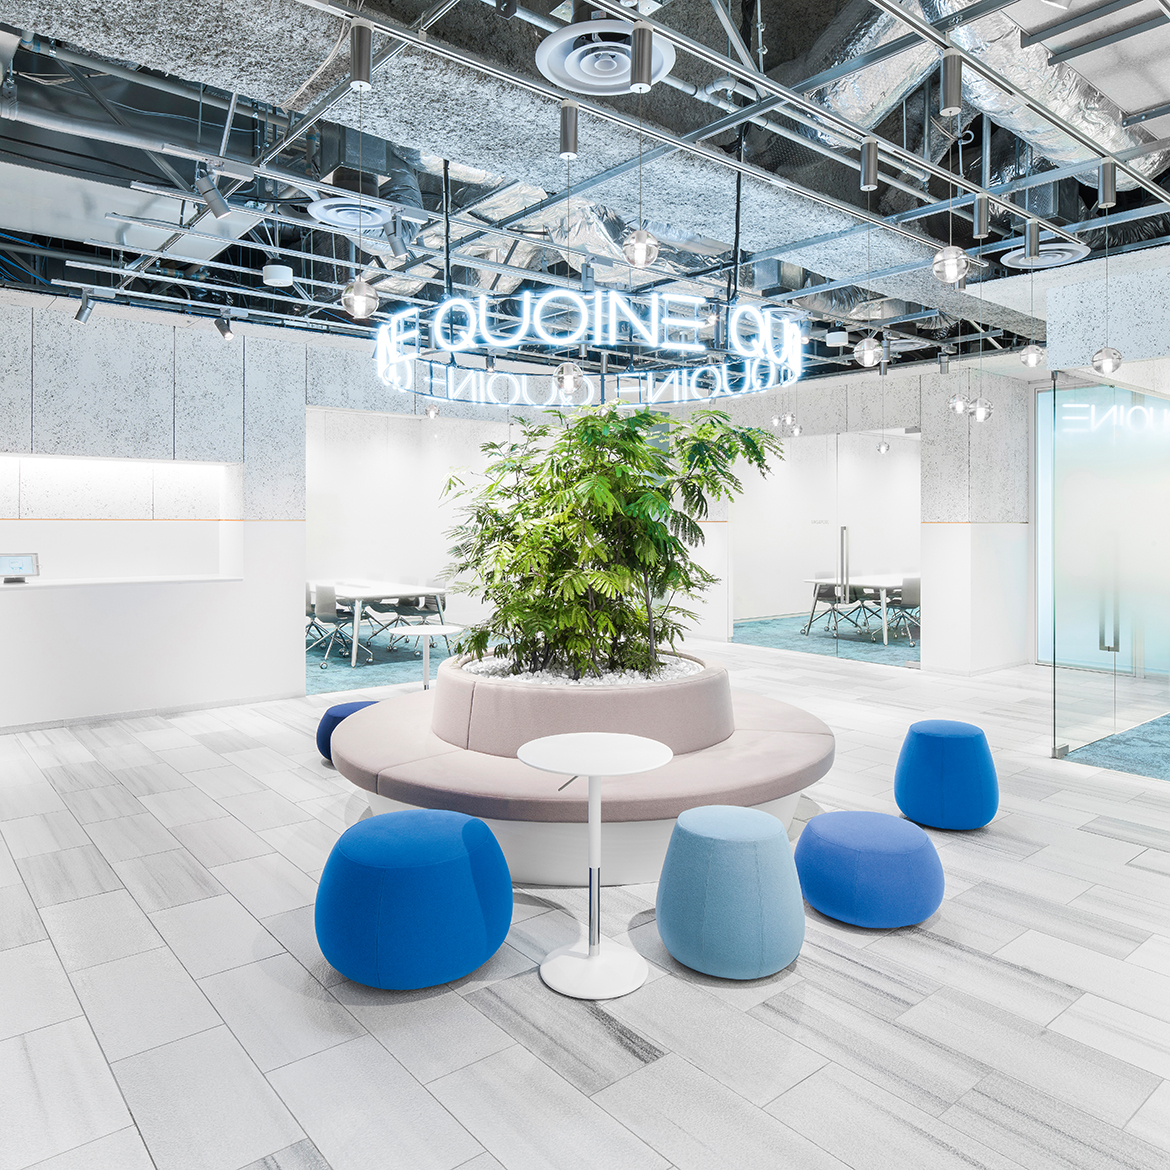 QUOINE Offices